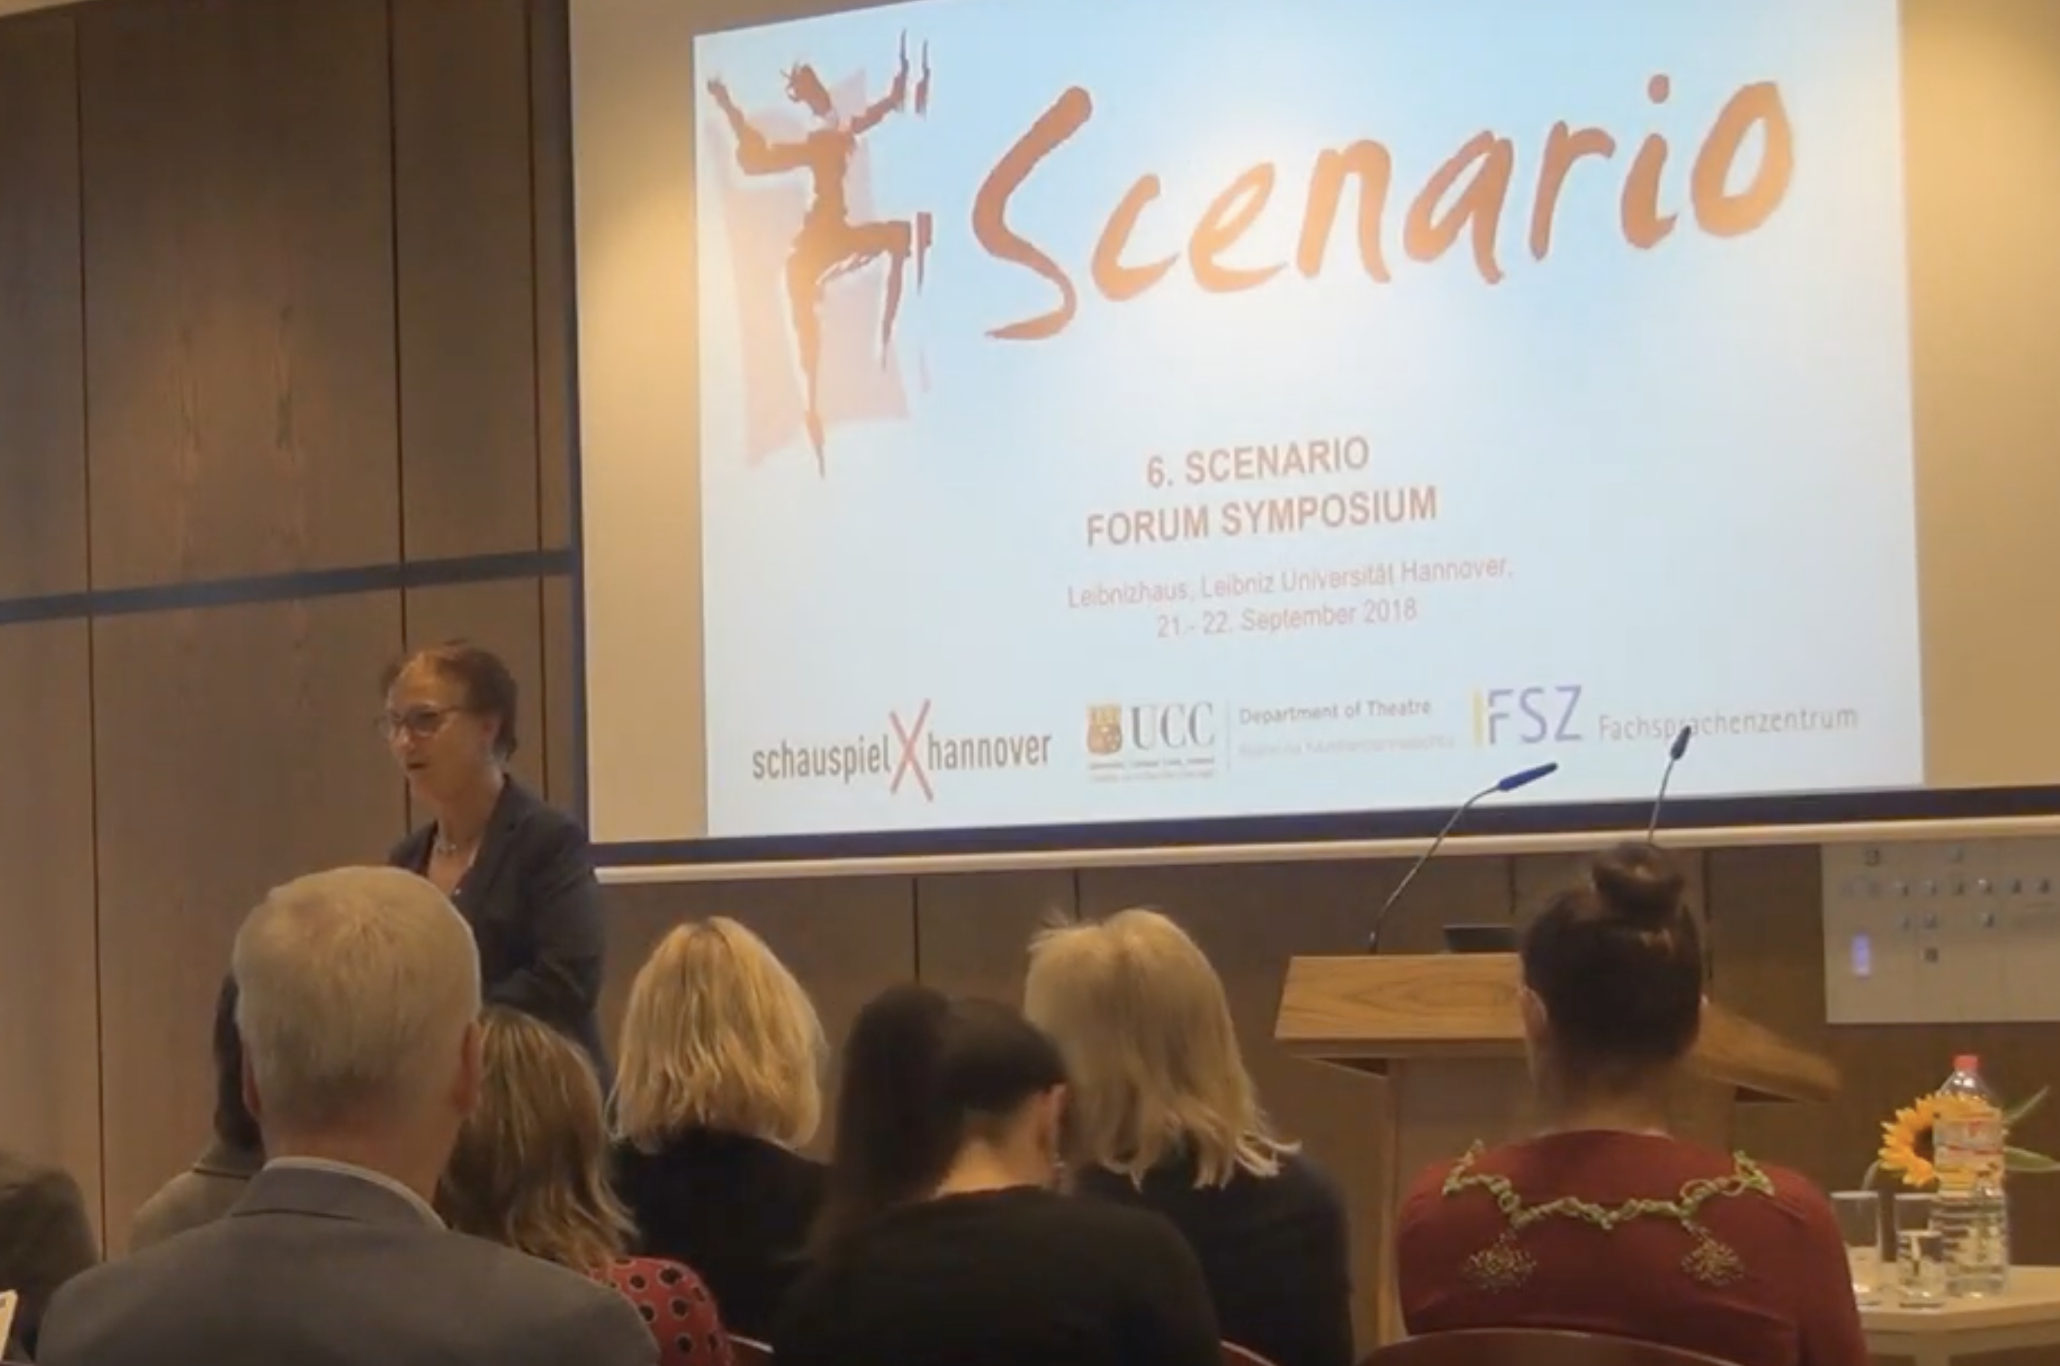 Short Film - 6th Scenario Forum Symposium